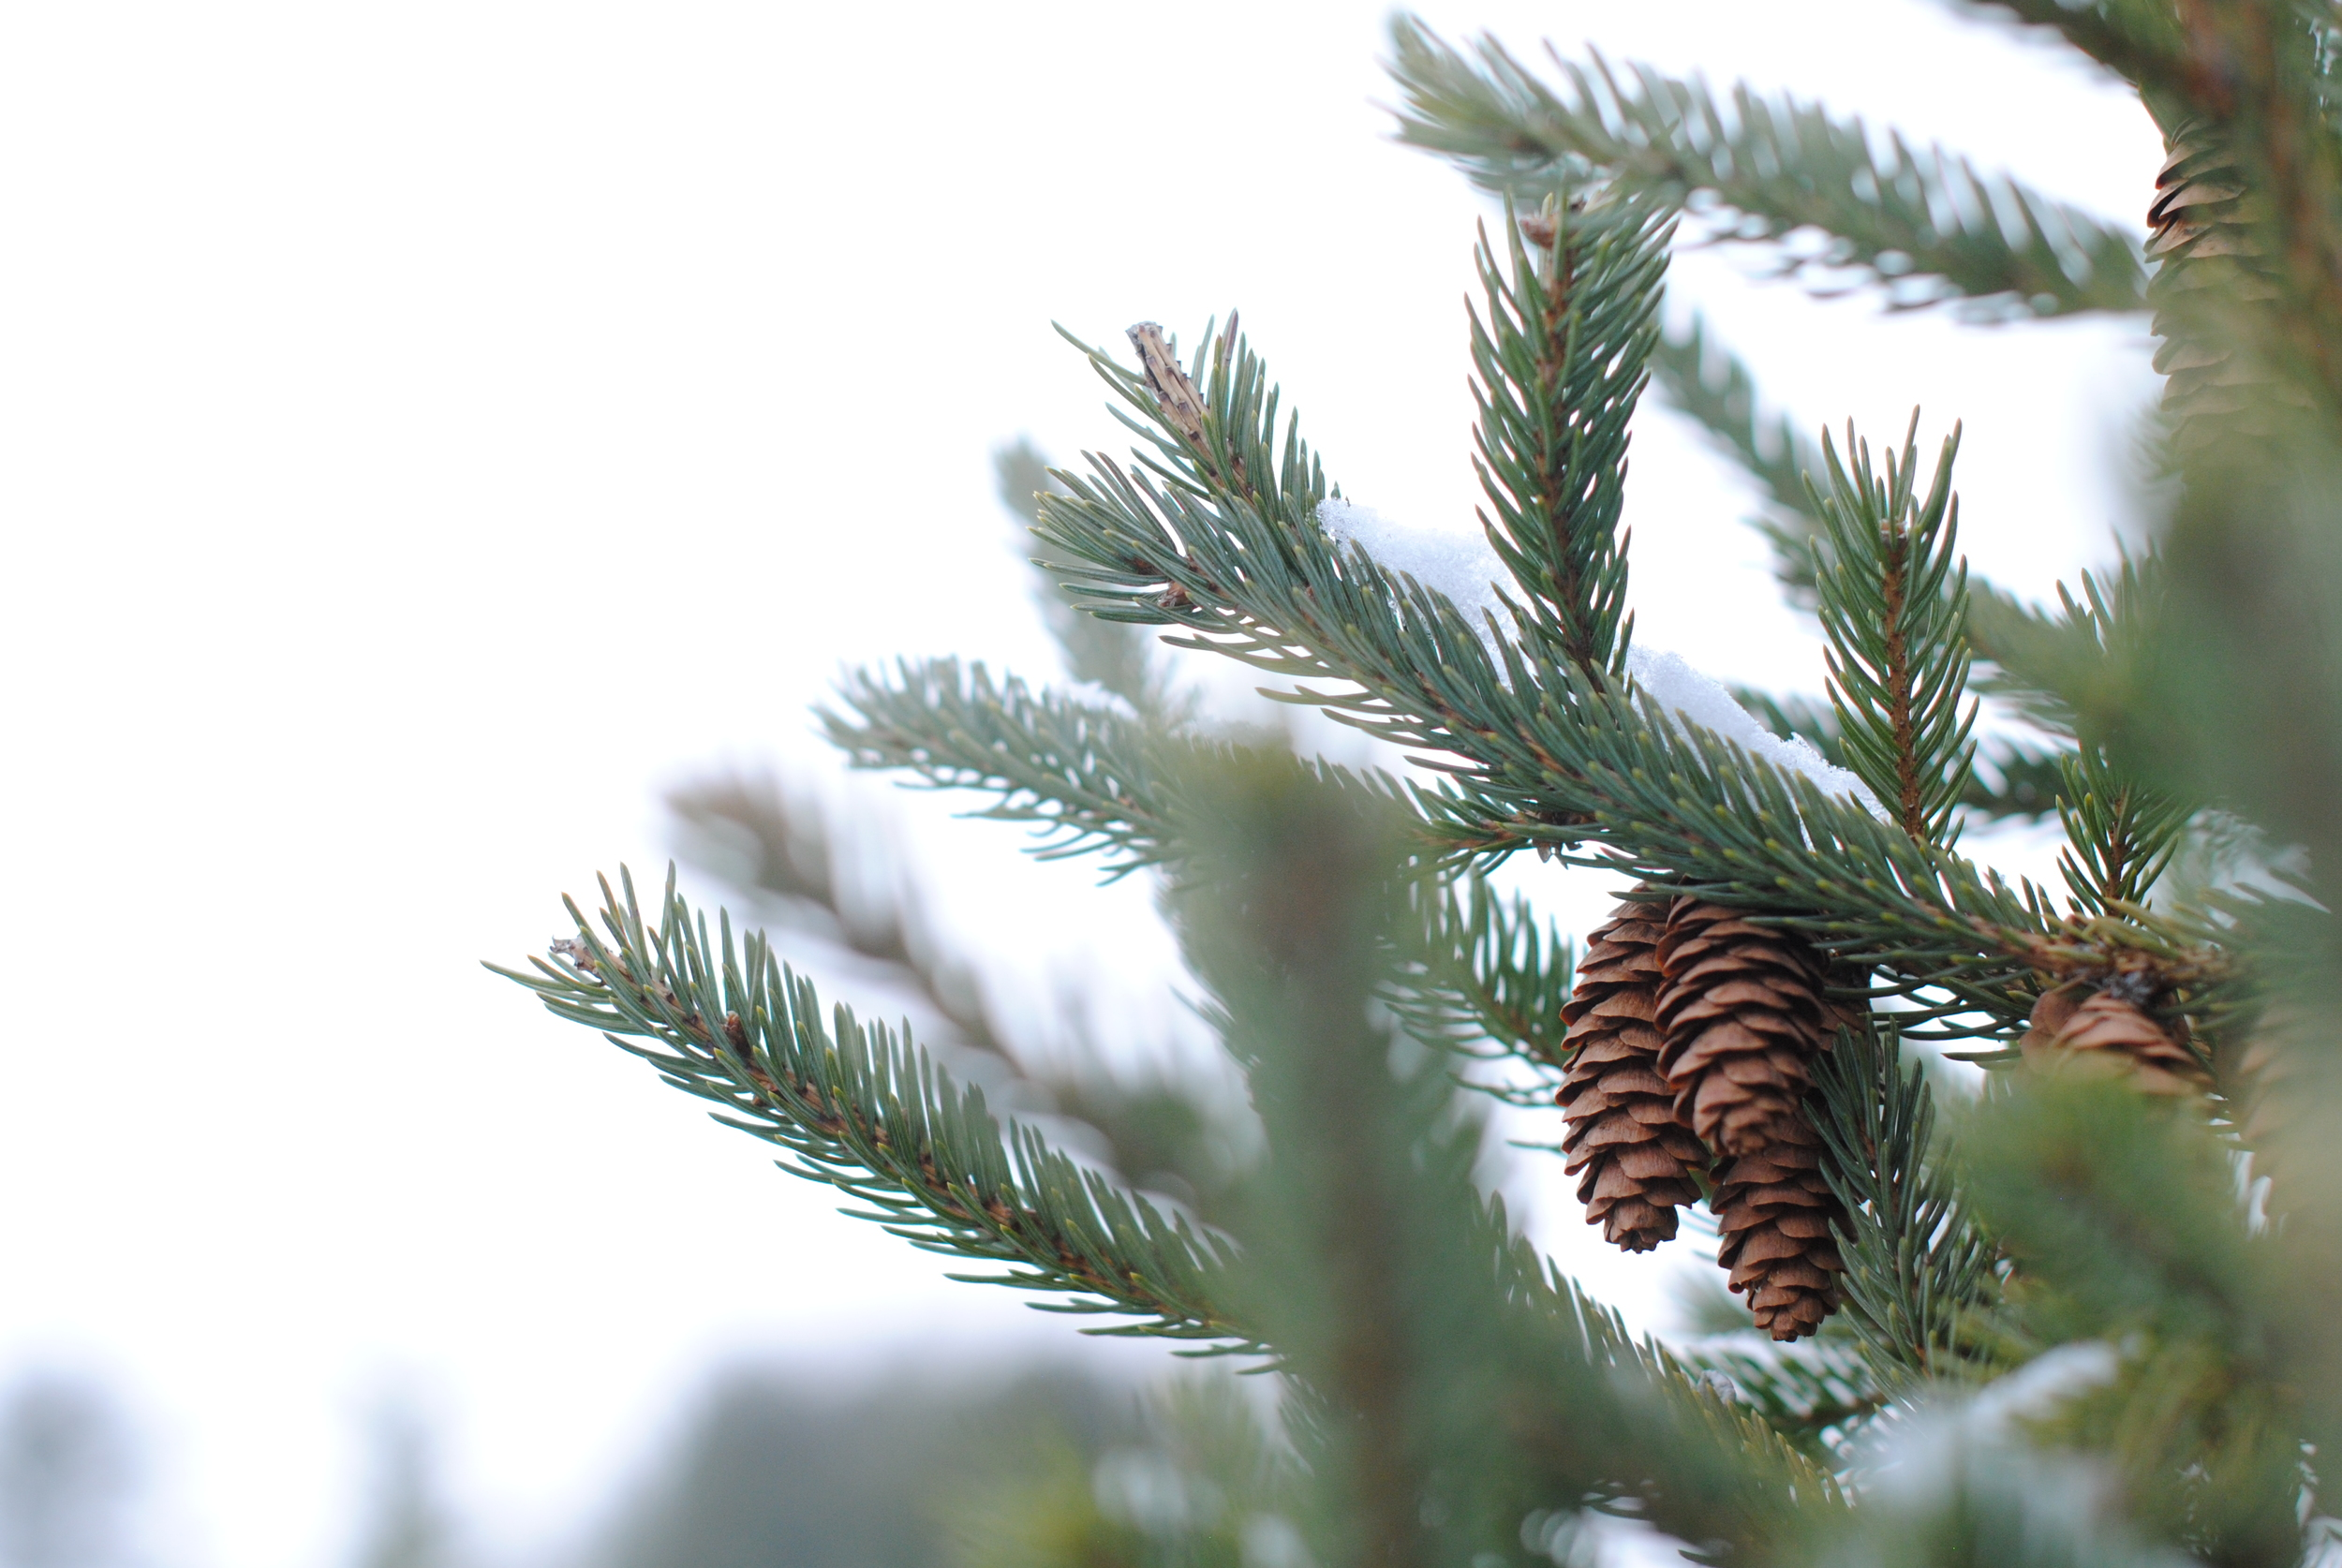 Pinecones at a christmas tree farm in WI.